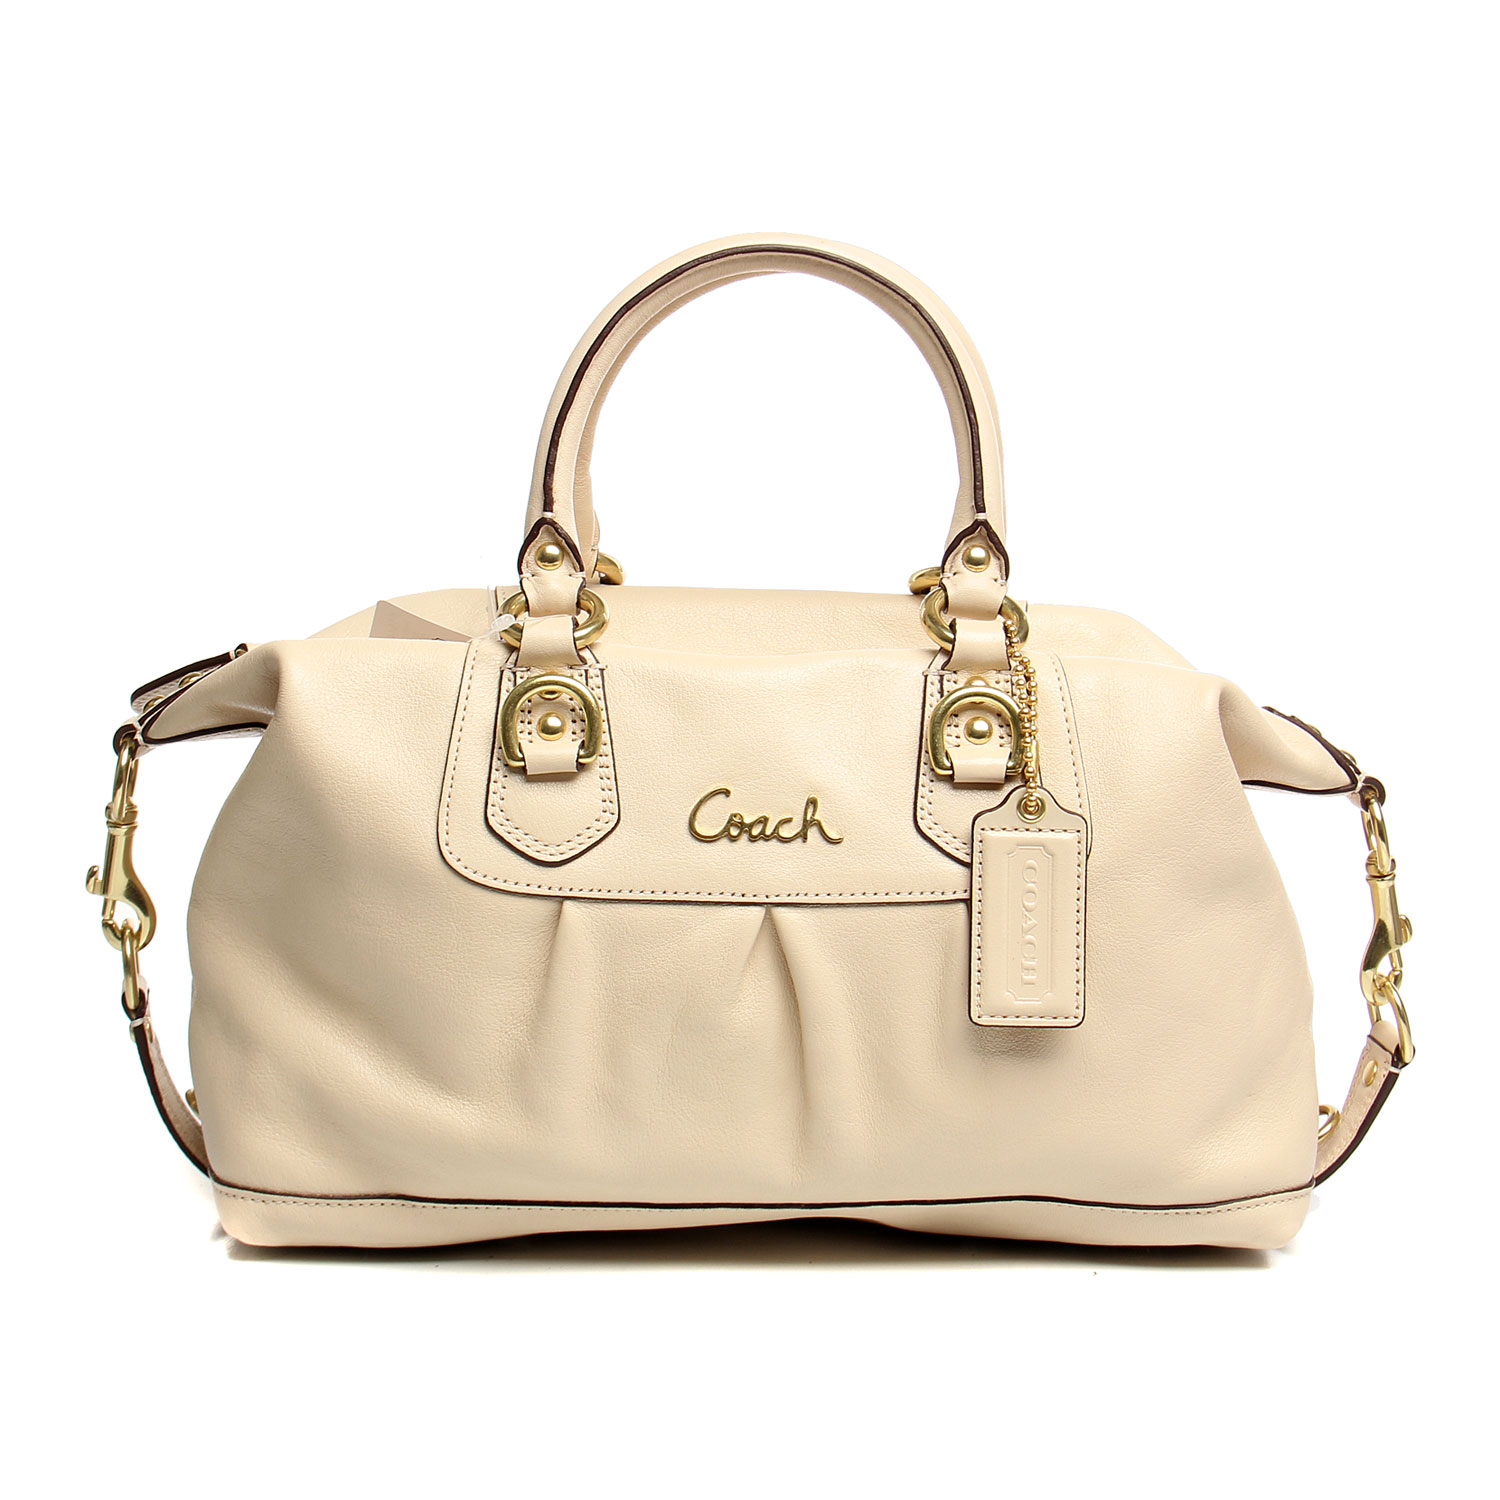 Coach Outlet Official Coach Factory Outlet Store Online